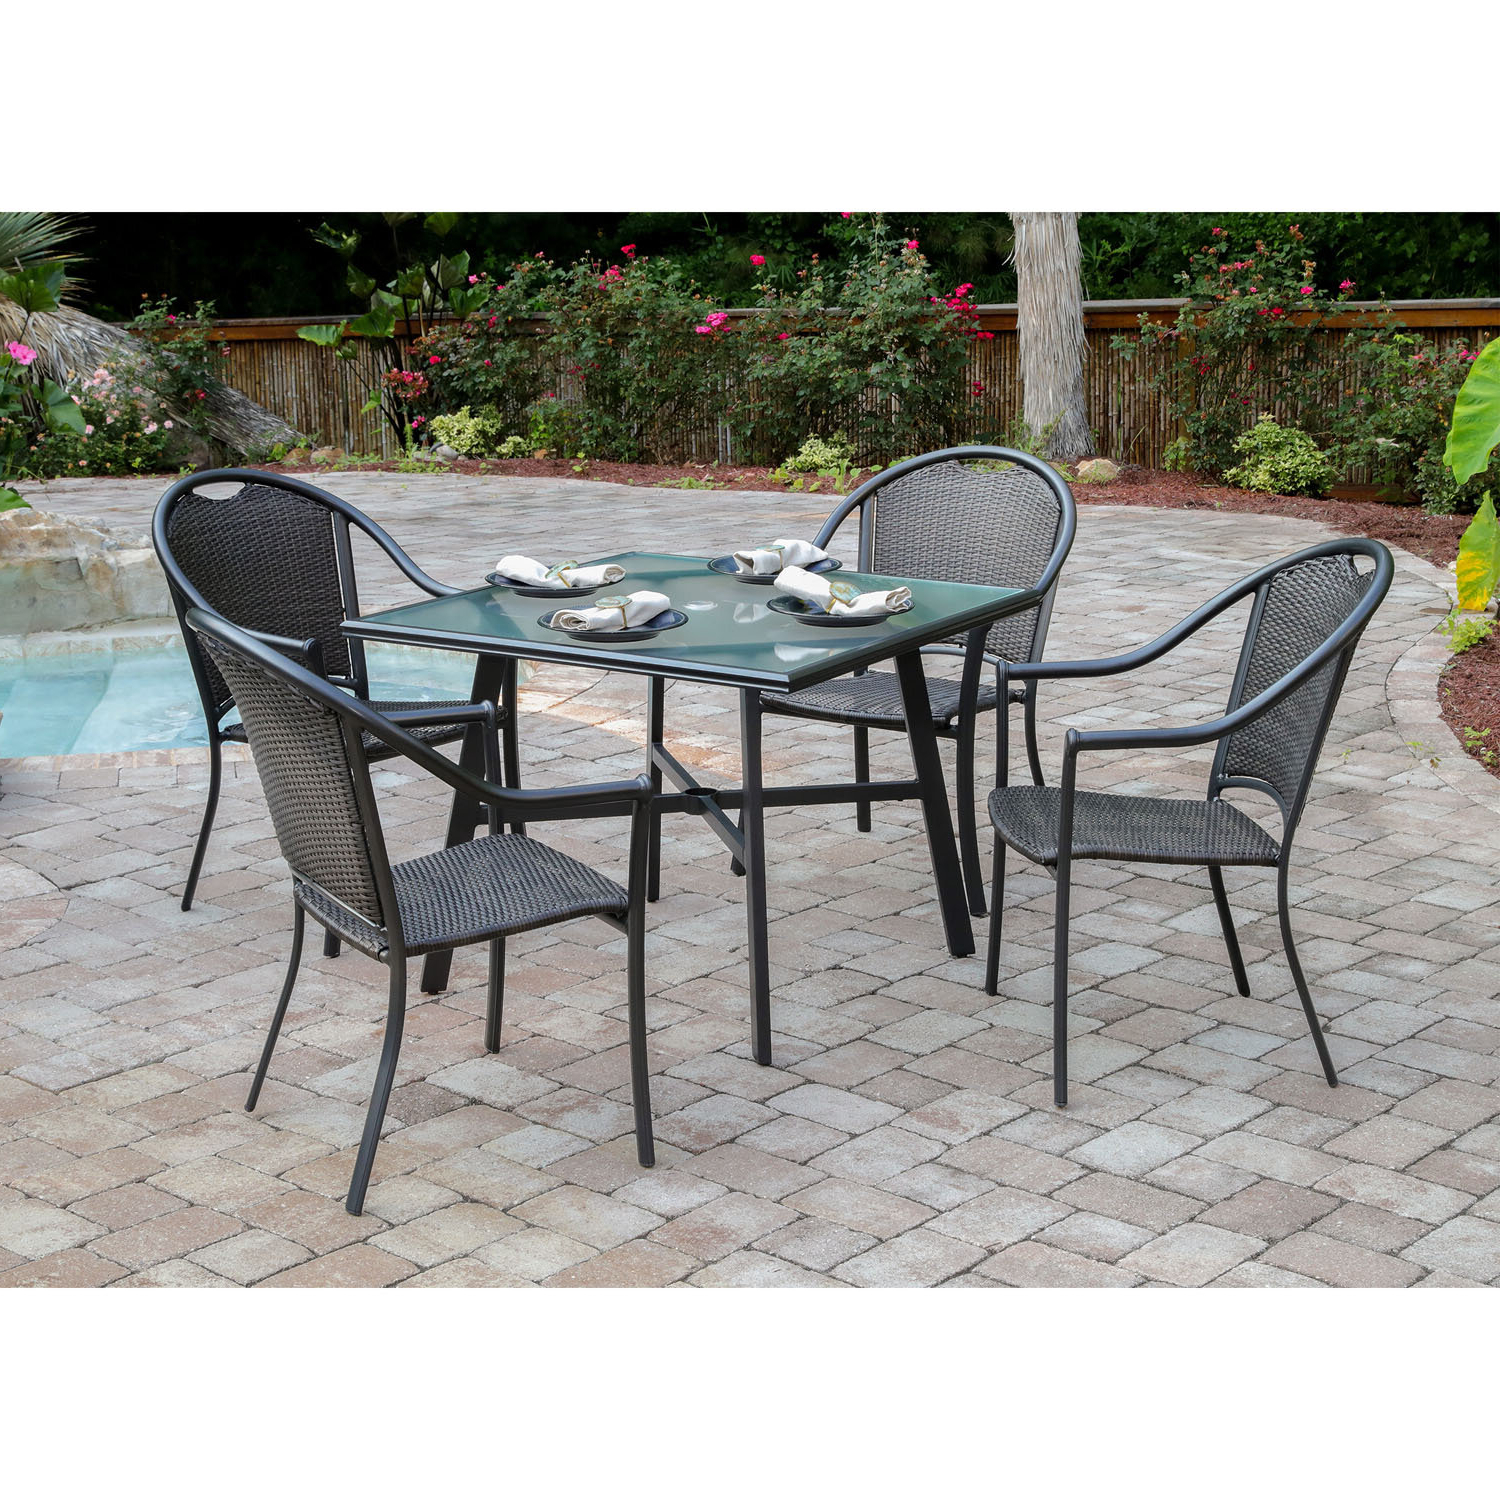 Bearden 5 Piece Commercial Grade Patio Set With 4 Woven Dining Chairs And A  38 In. Glass Top Dining Table Within Best And Newest Bearden 3 Piece Dining Sets (Gallery 19 of 20)